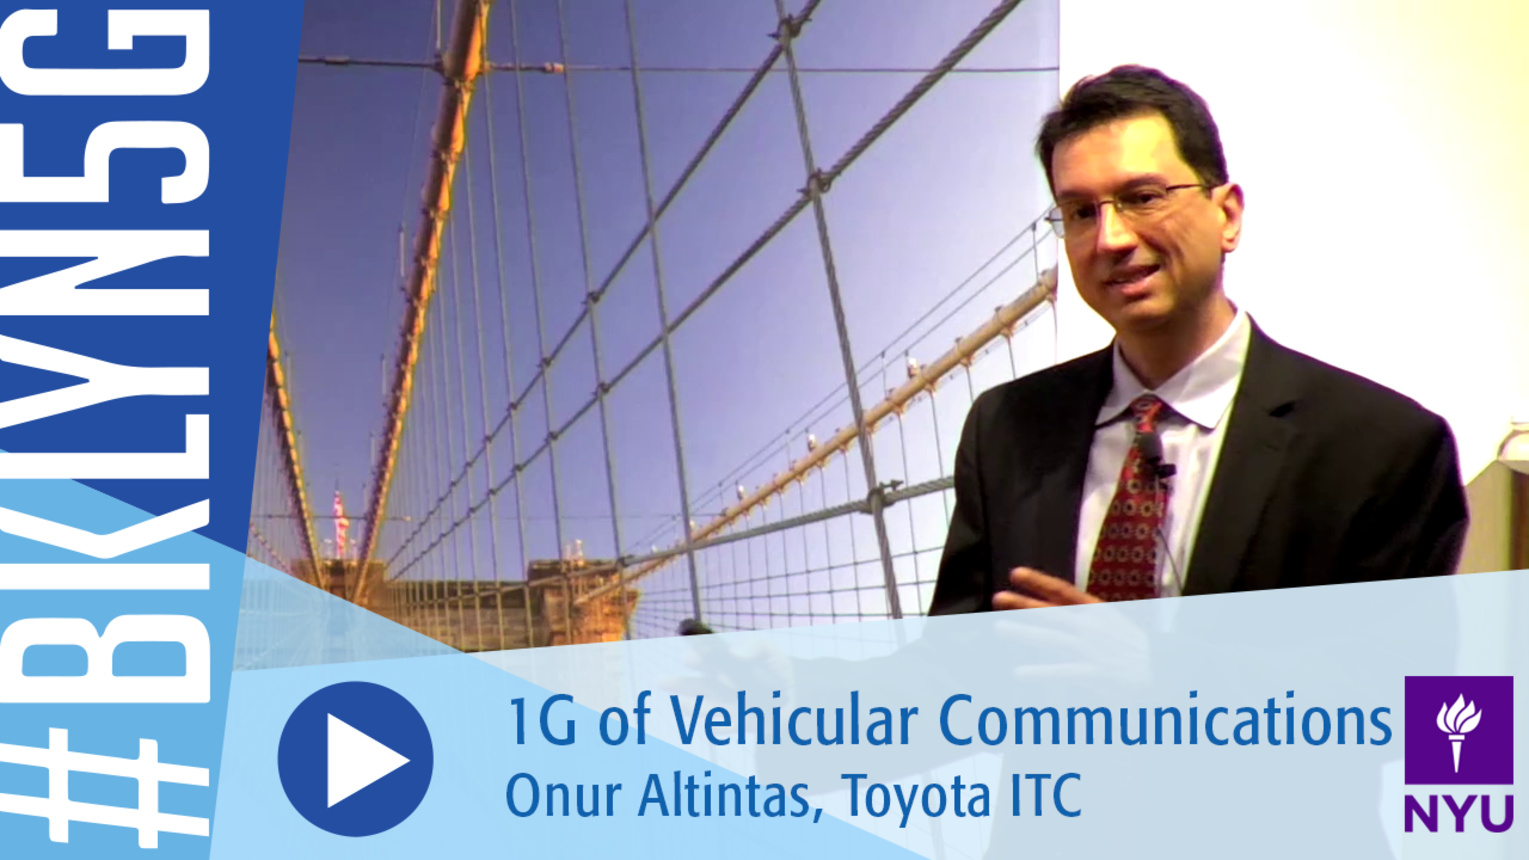 Brooklyn 5G 2016: Onur Altintas on 1G of Vehicular Communications